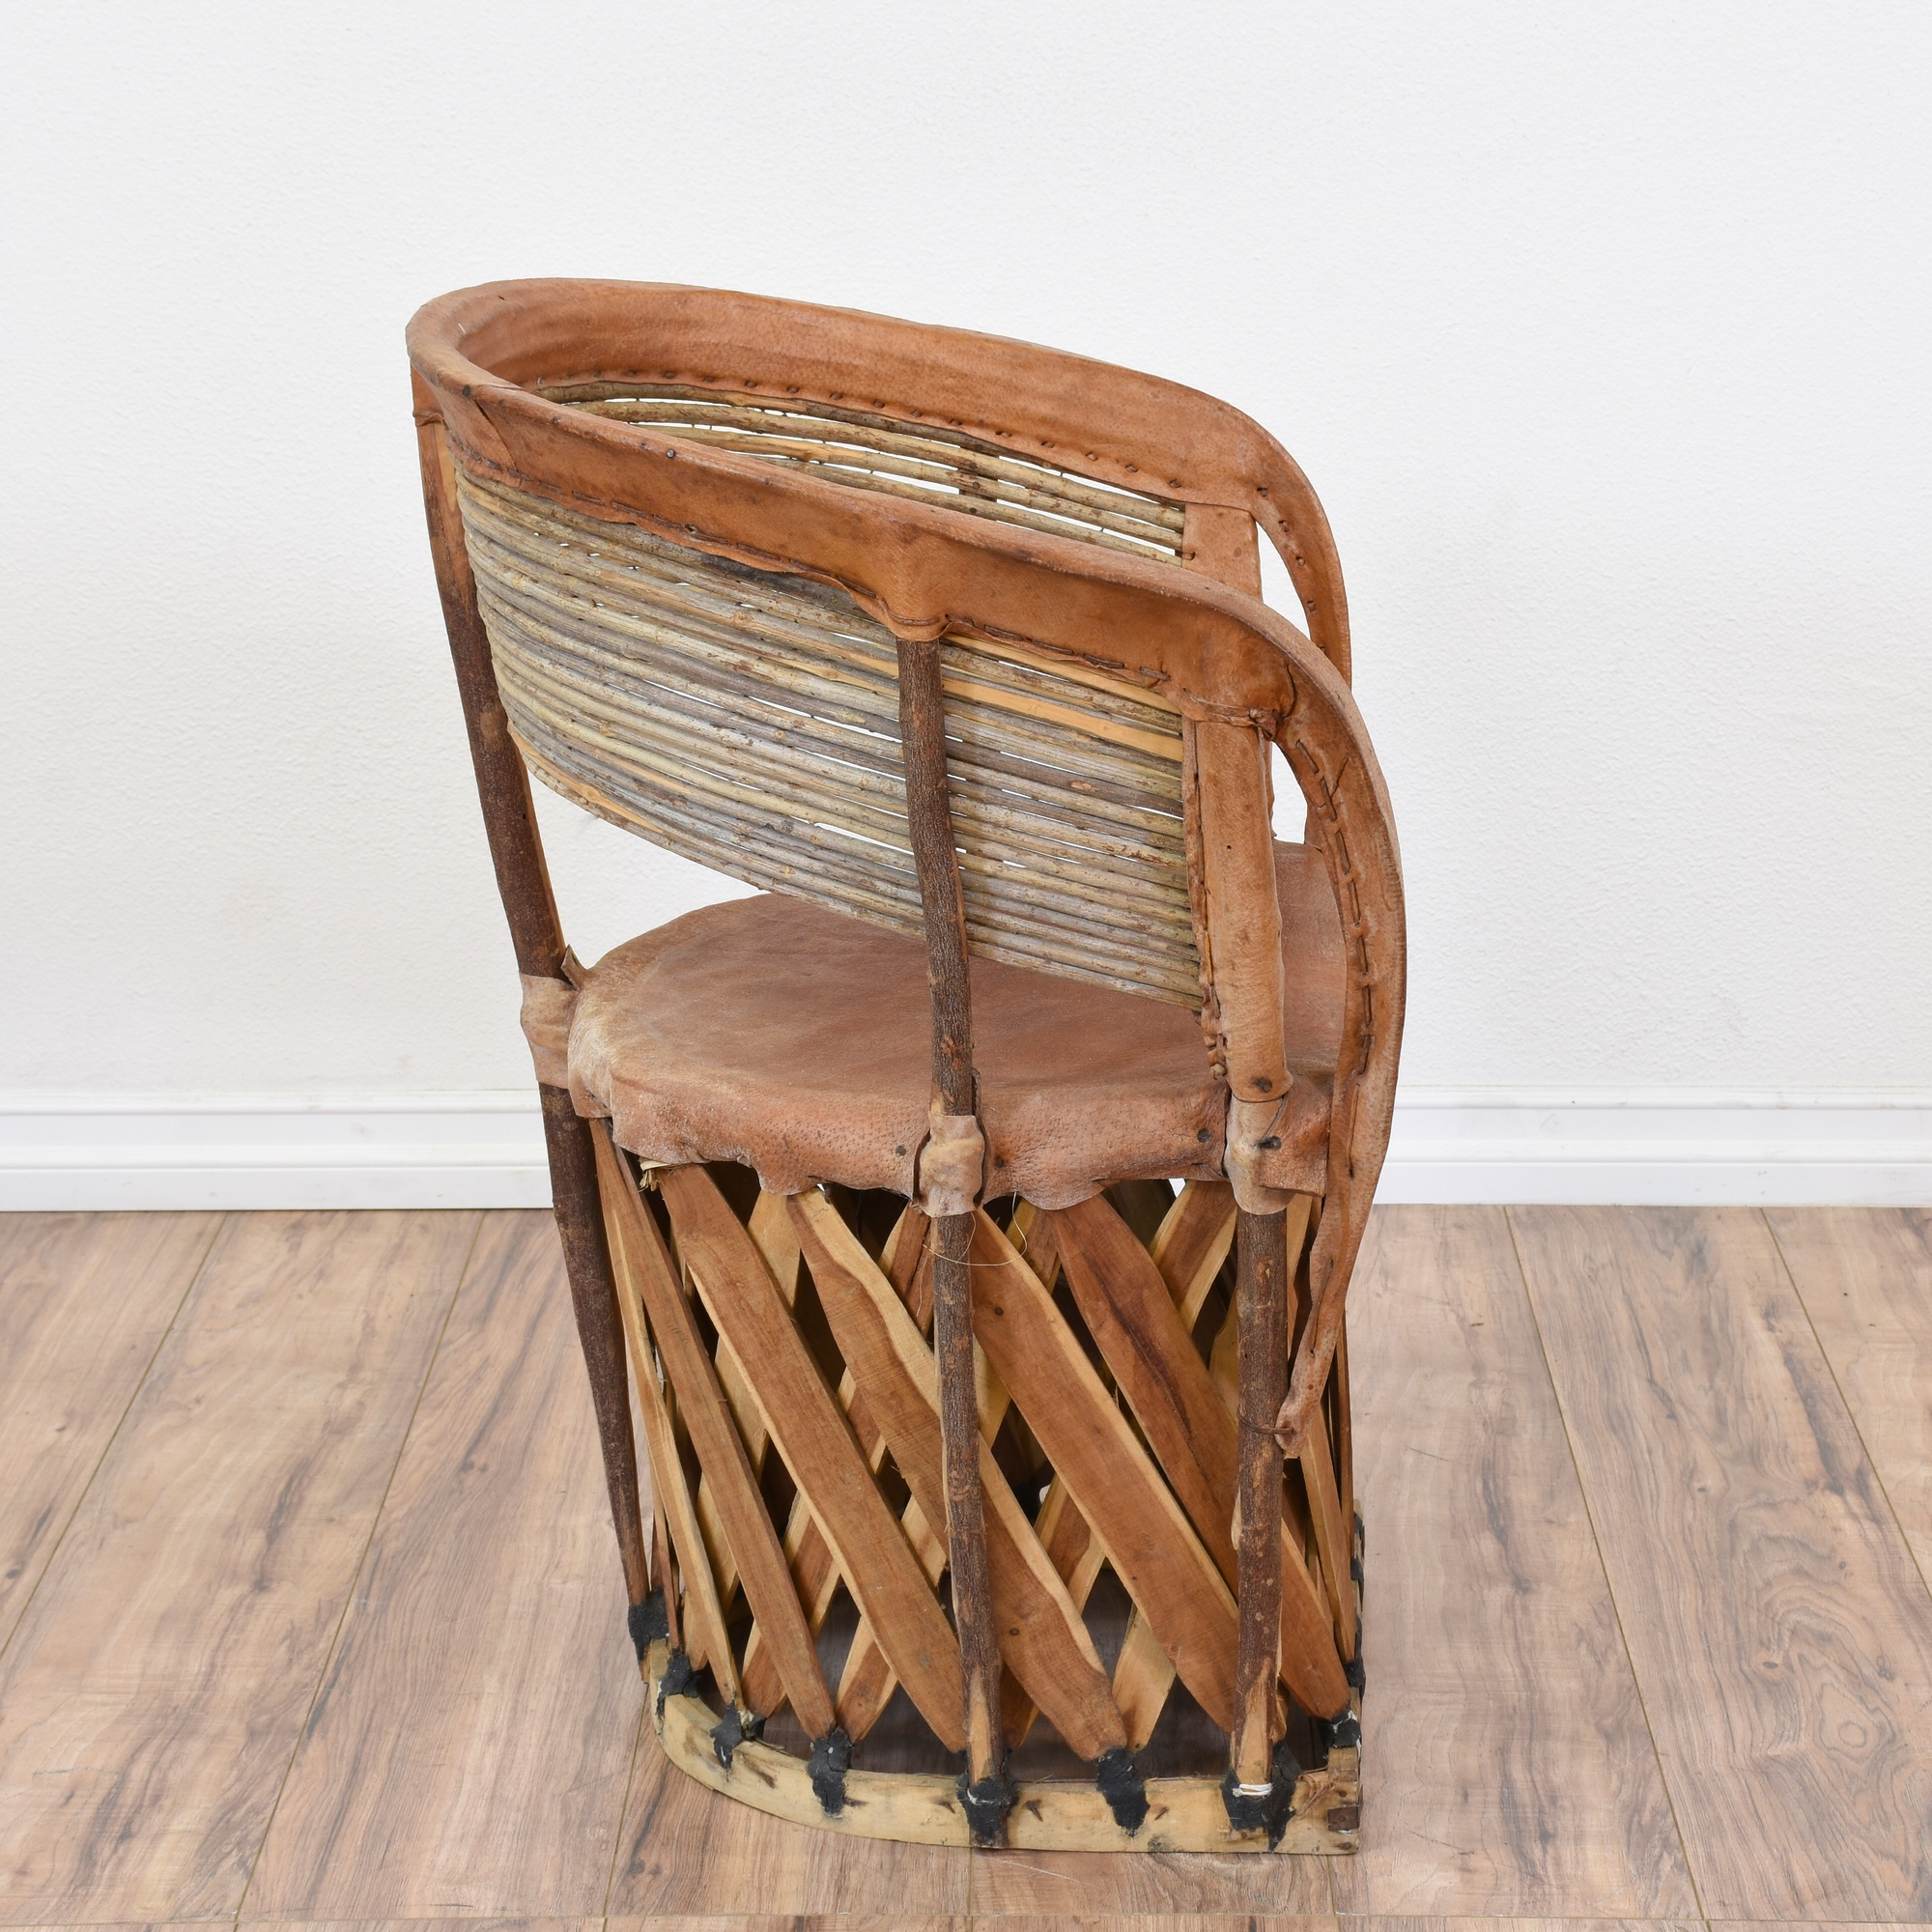 How To Stack Dining Room Chair When Moving